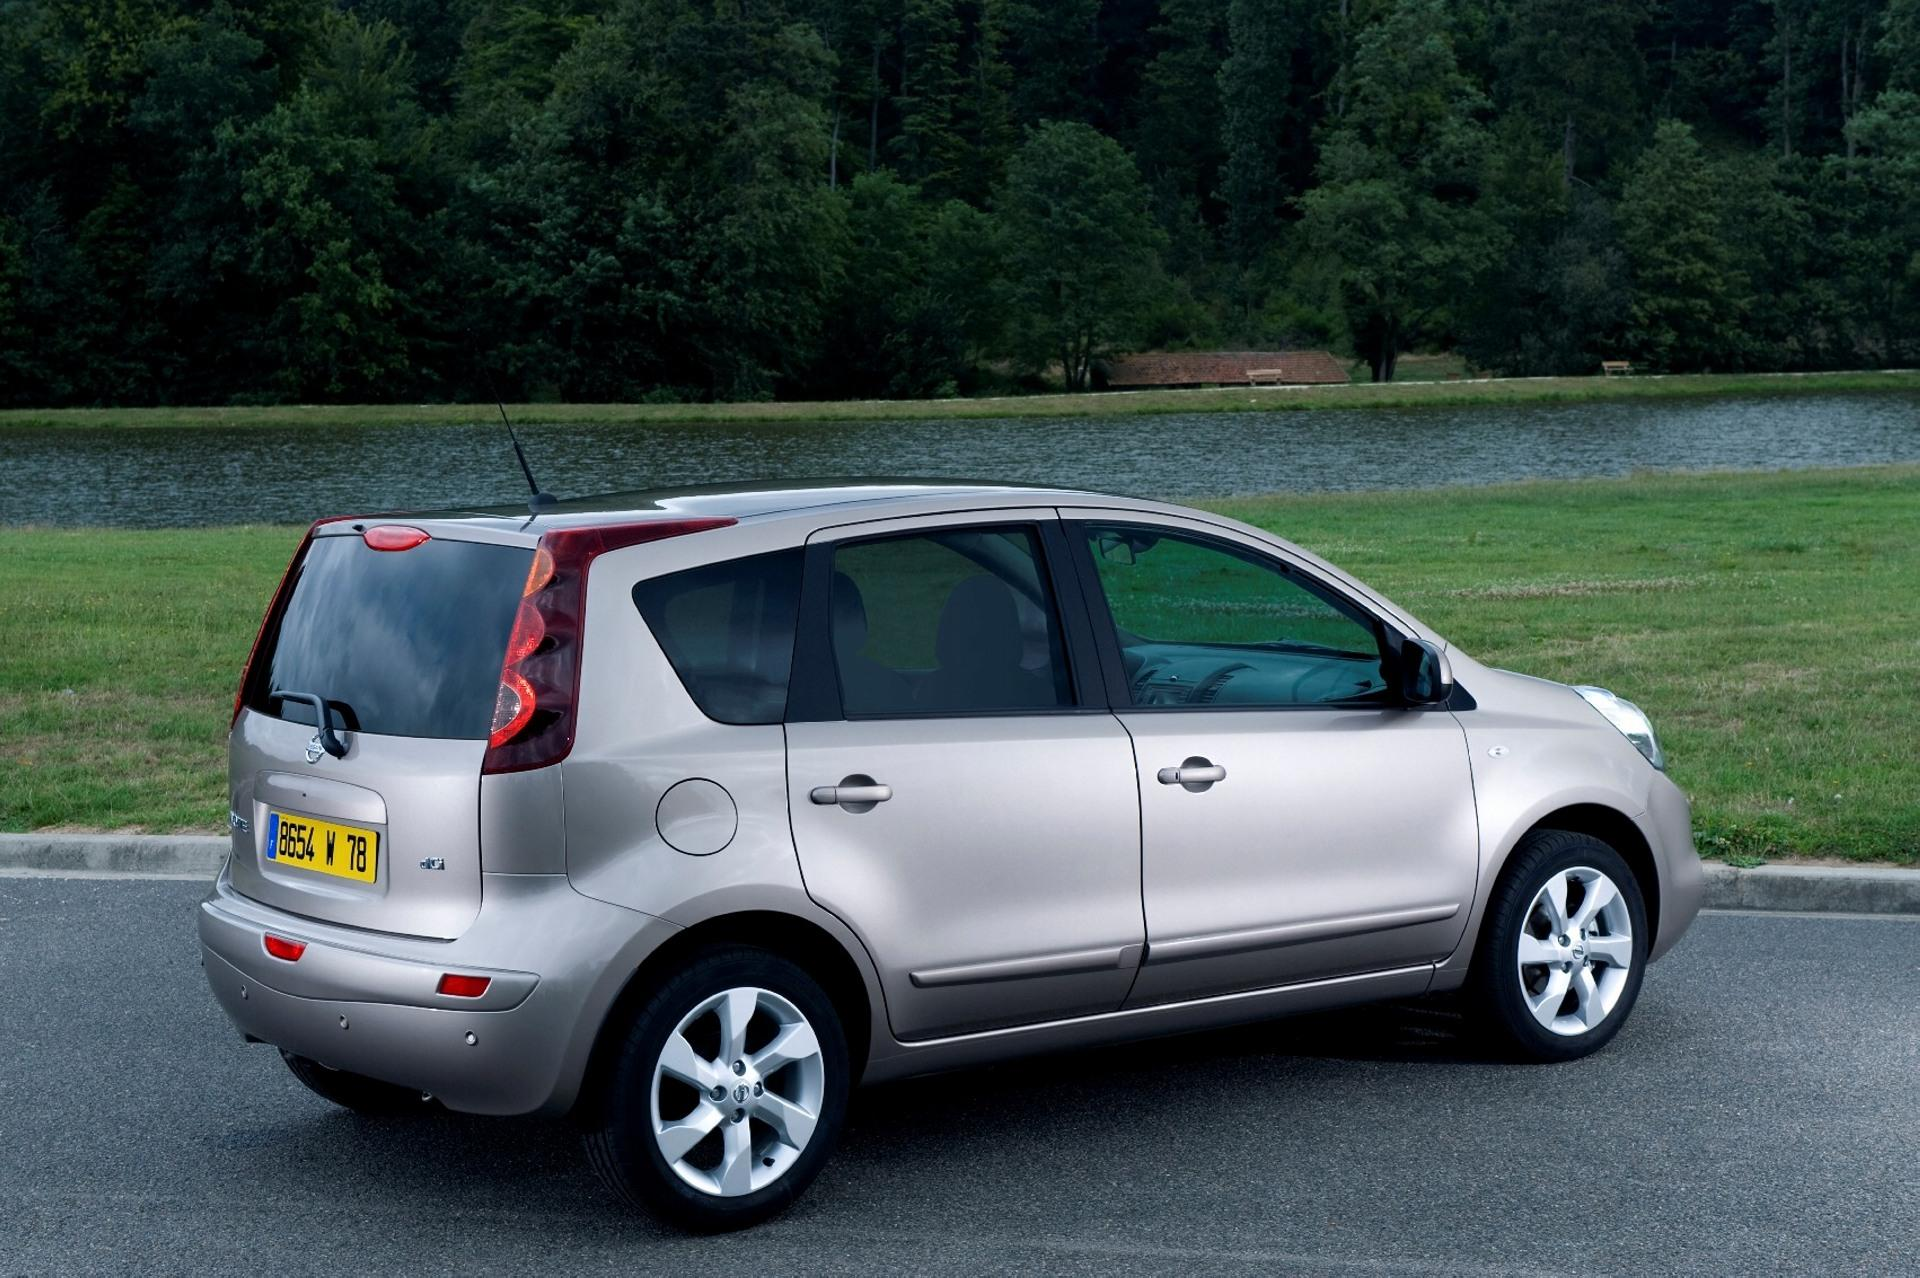 New nissan note cars for sale in east midlands